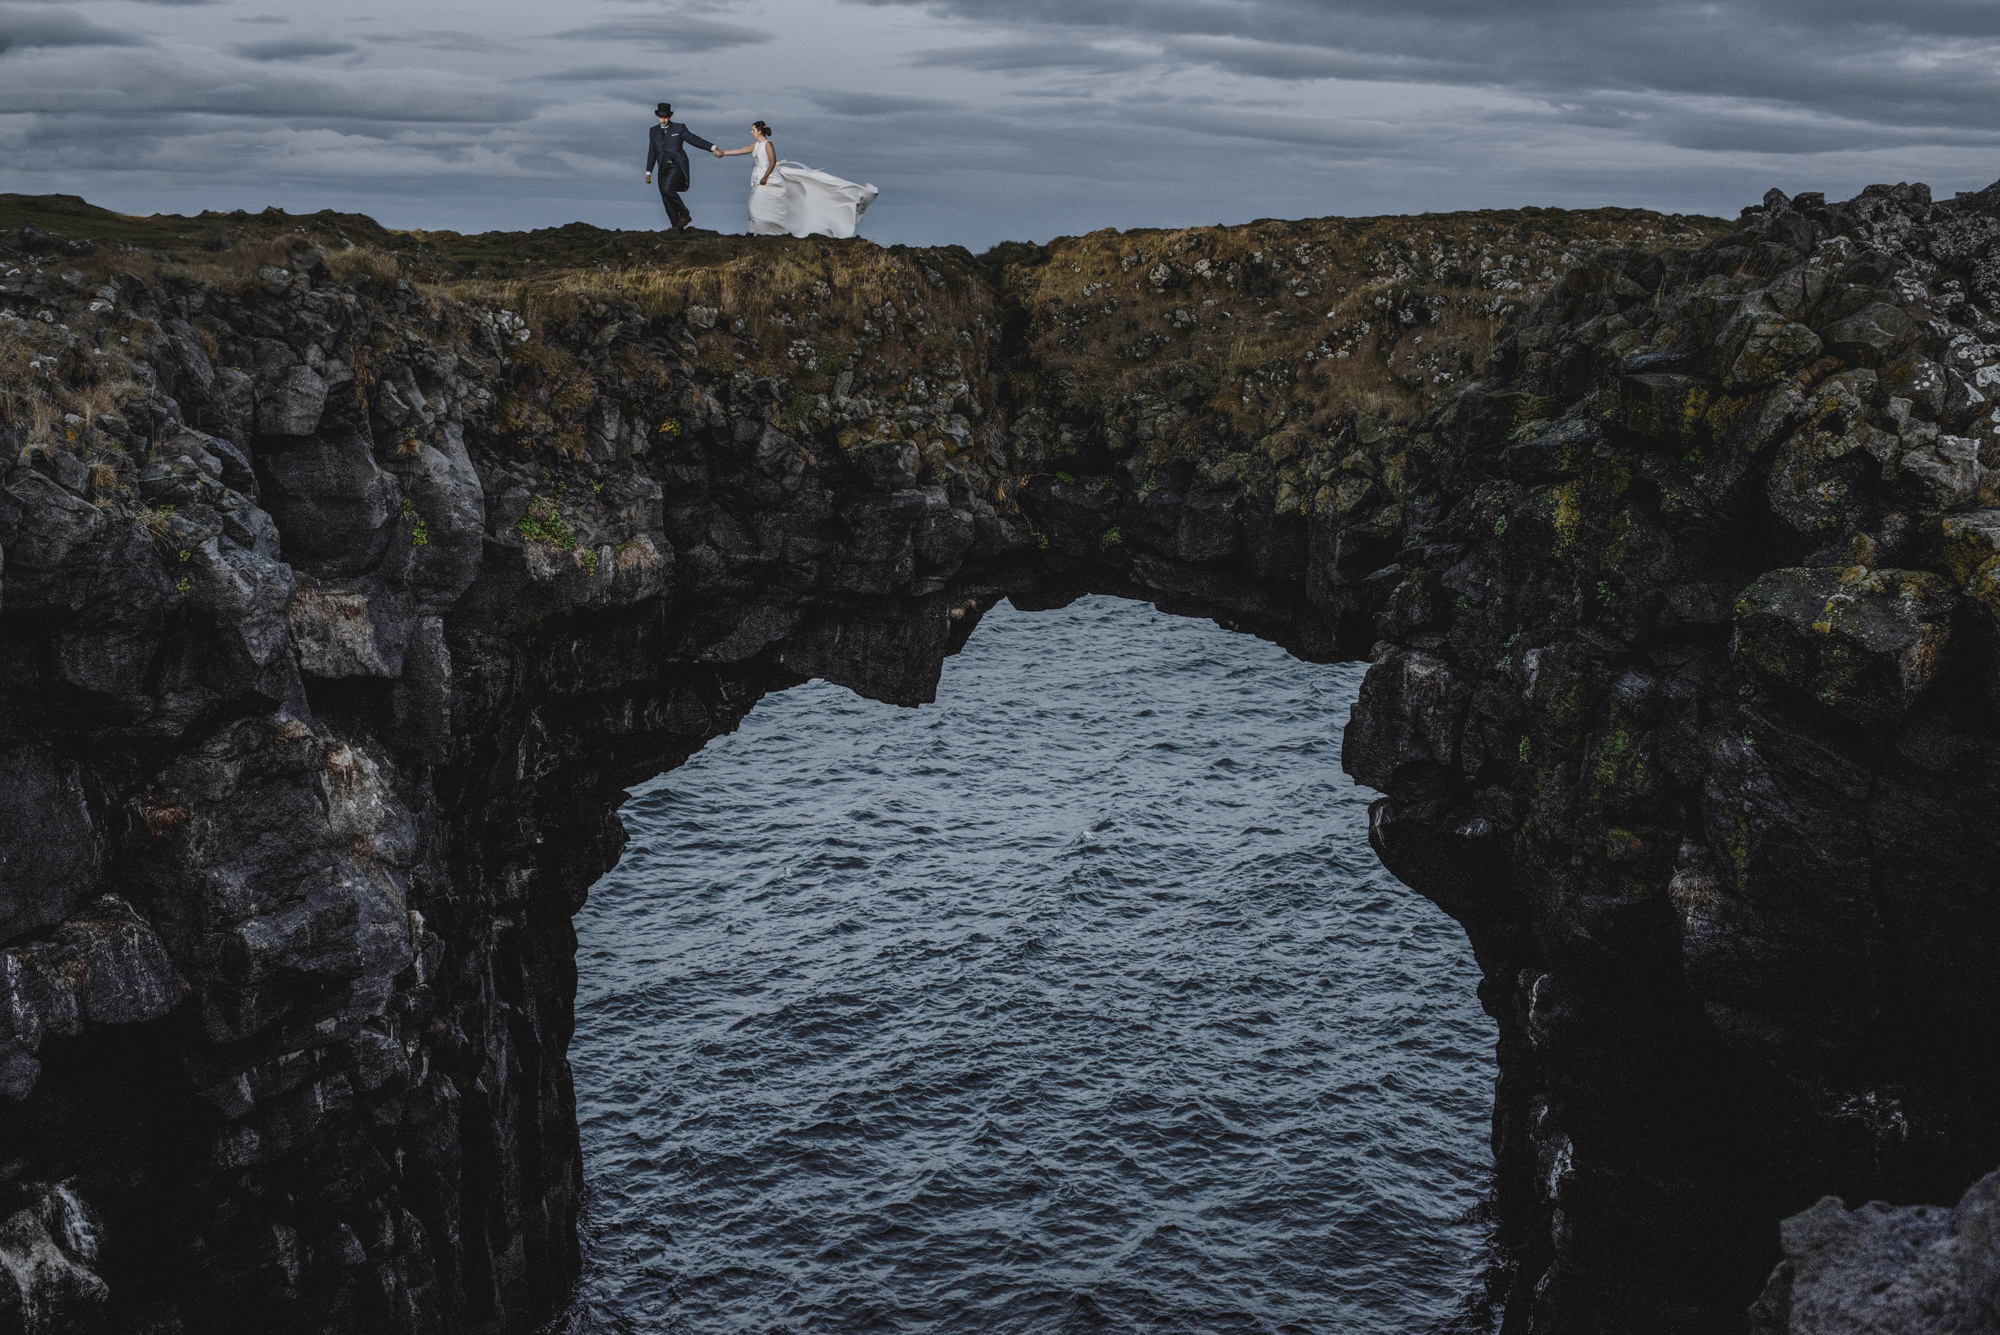 Couple make their way across arched bridge over water - photo by Look Fotographica